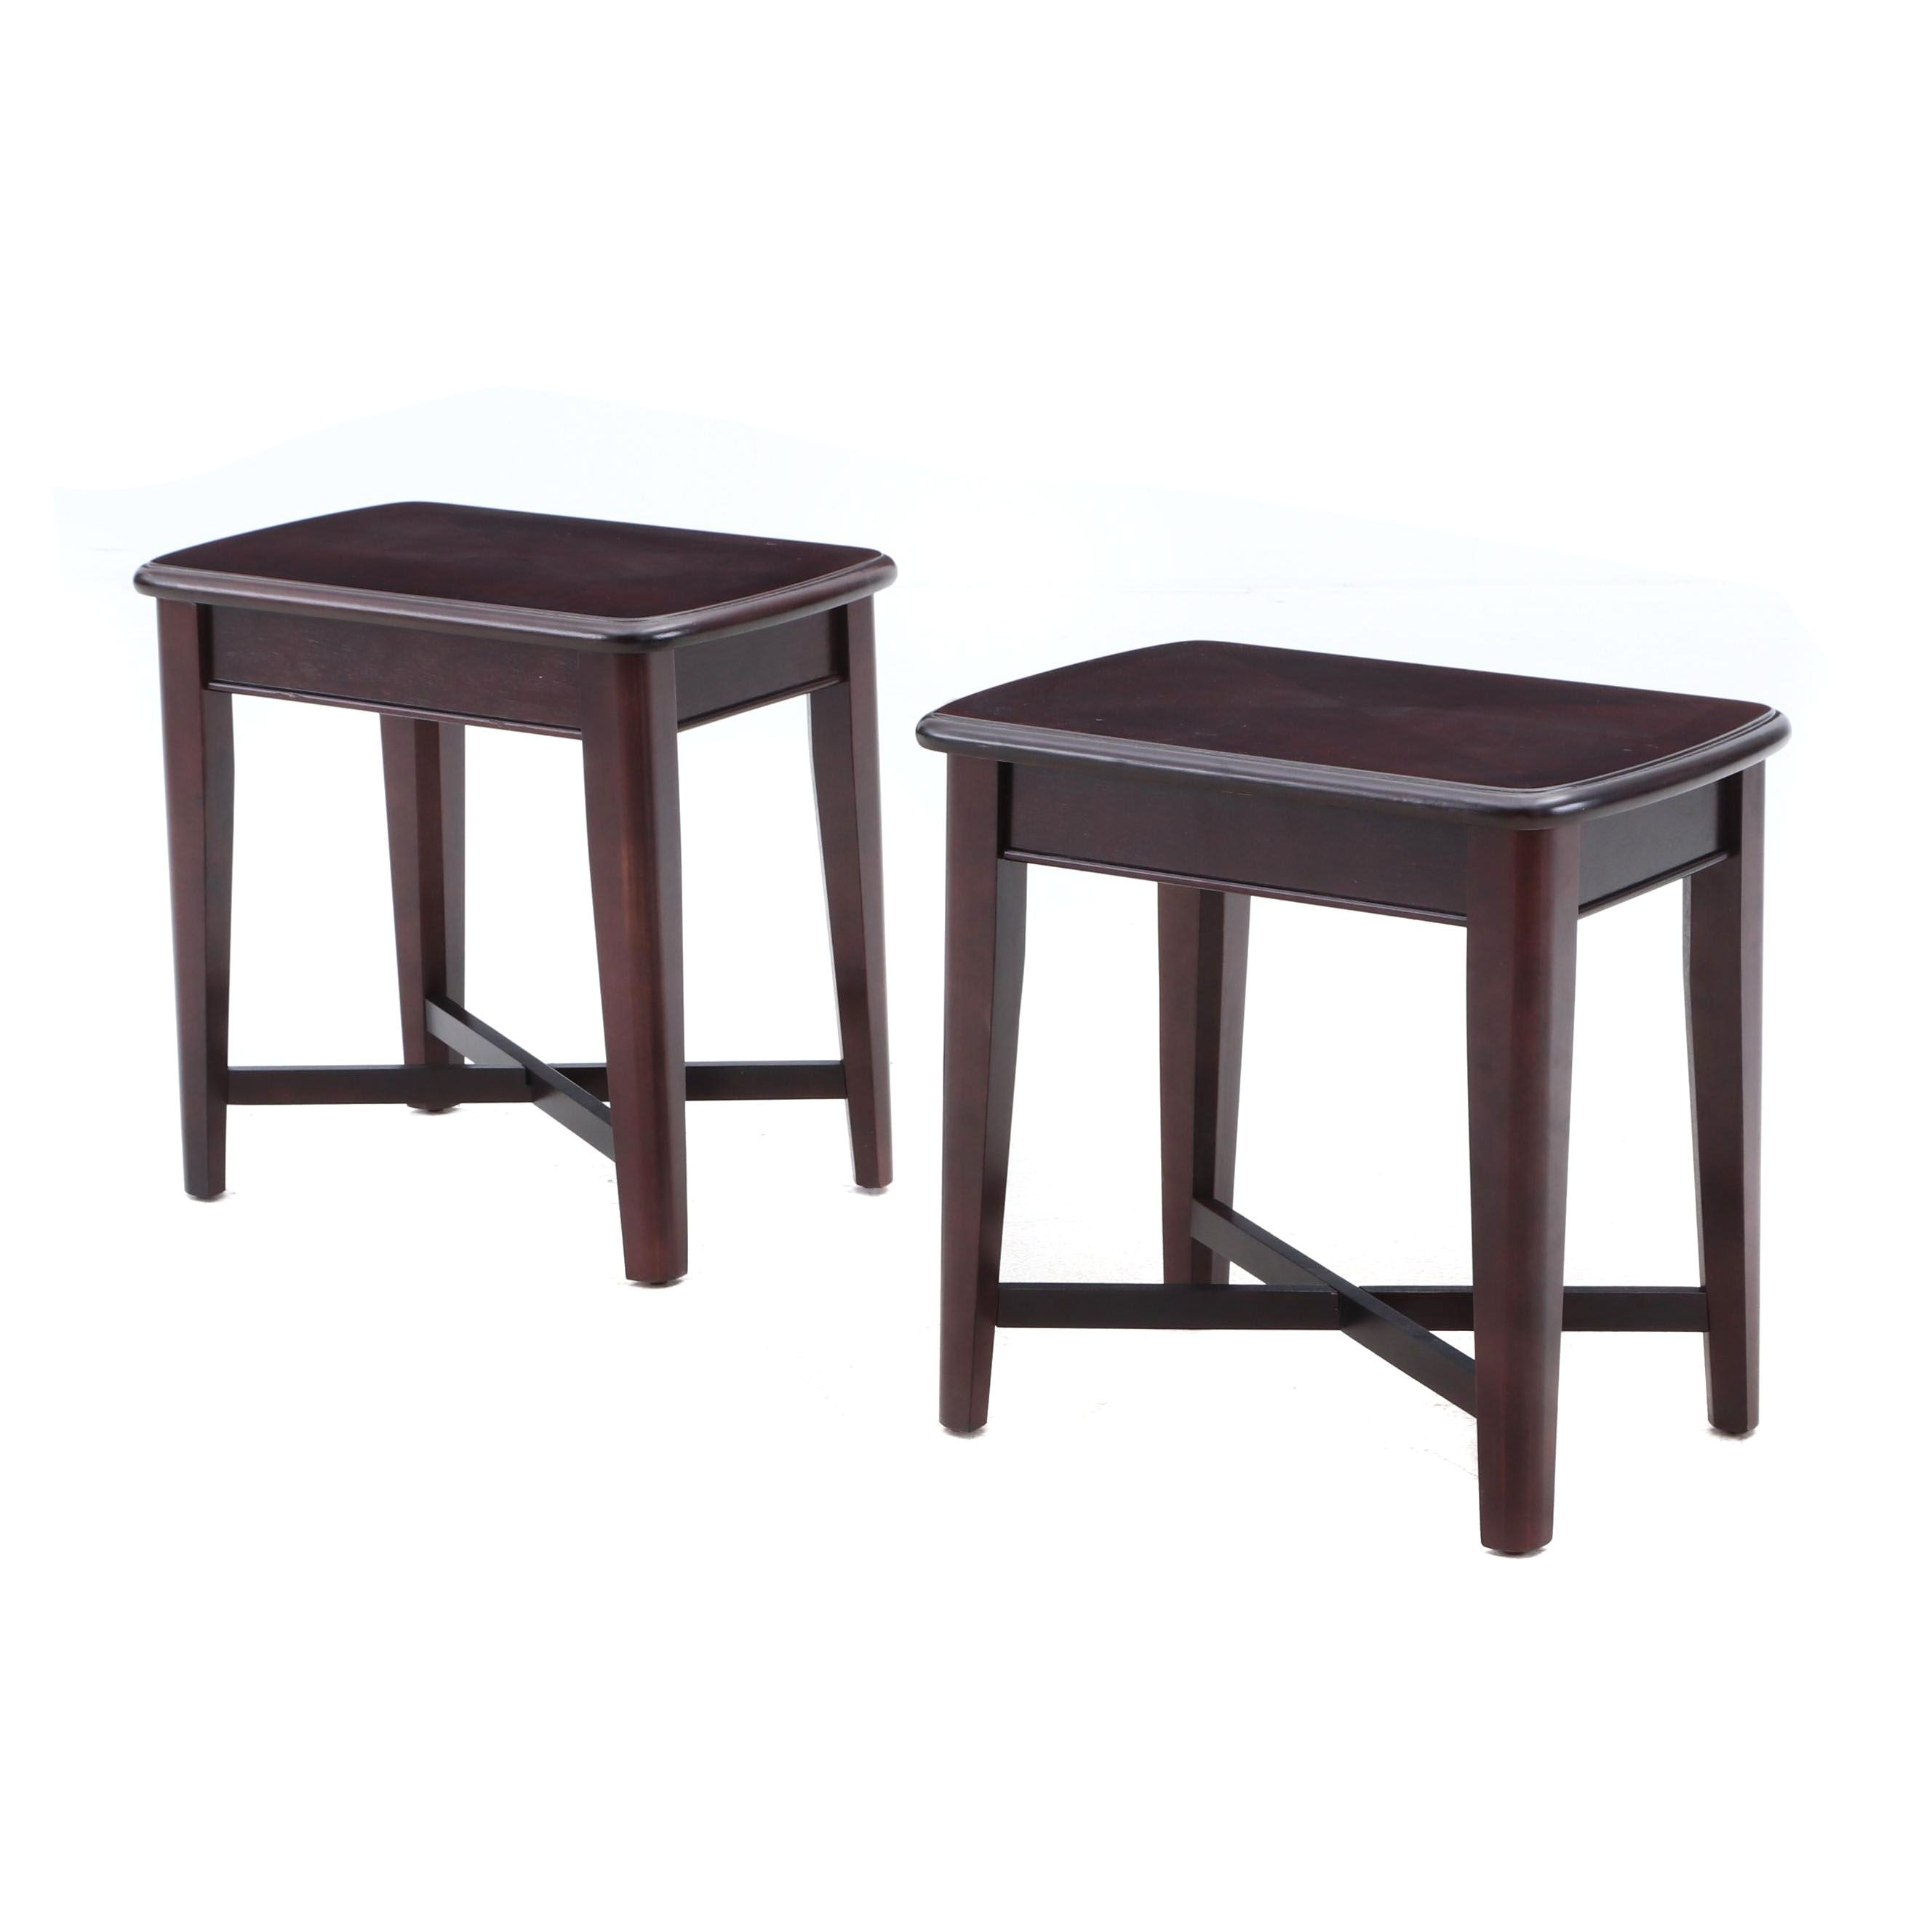 Contemporary Wood Veneer Cherry Finish Side Tables